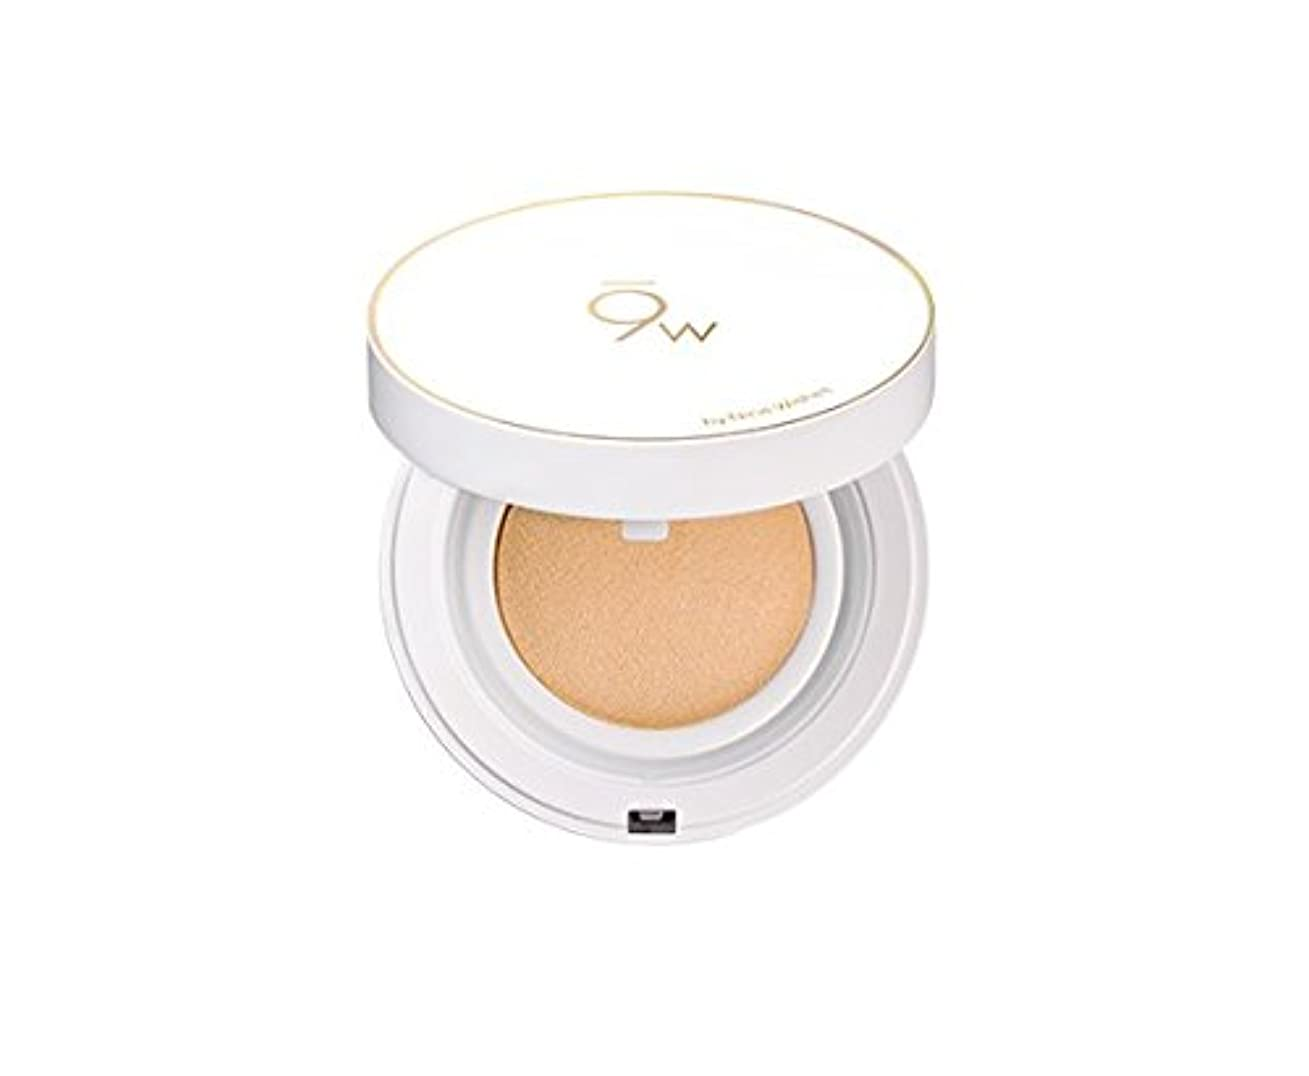 9WISHES (ナインウィッシュス) ライト フィット パーフェクト カバー クッション/Light Fit Perfect Cover Cushion (SPF 50+ PA++++) (#21) [並行輸入品]